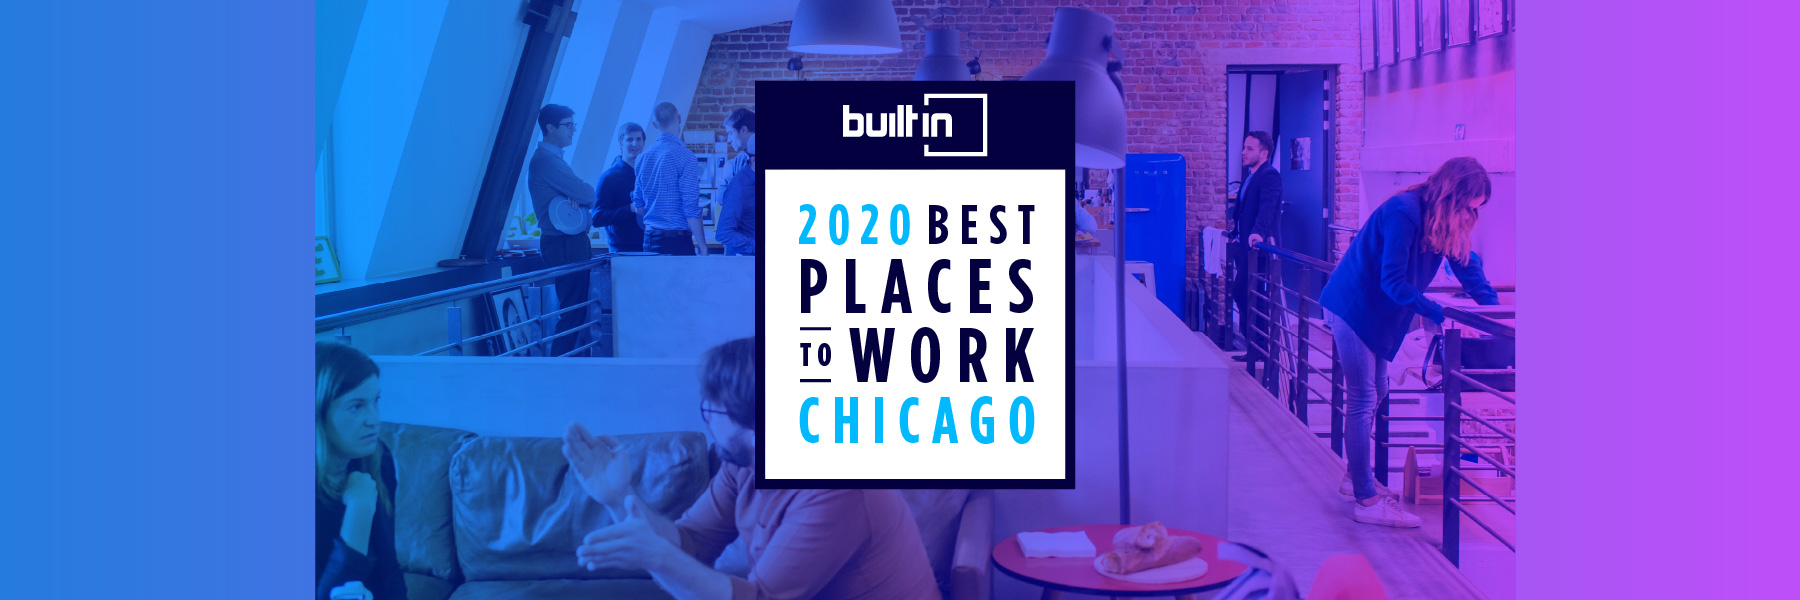 CPI, OpenFox is Honored in Built In Chicago's Prestigious Best Places to Work List in 2020